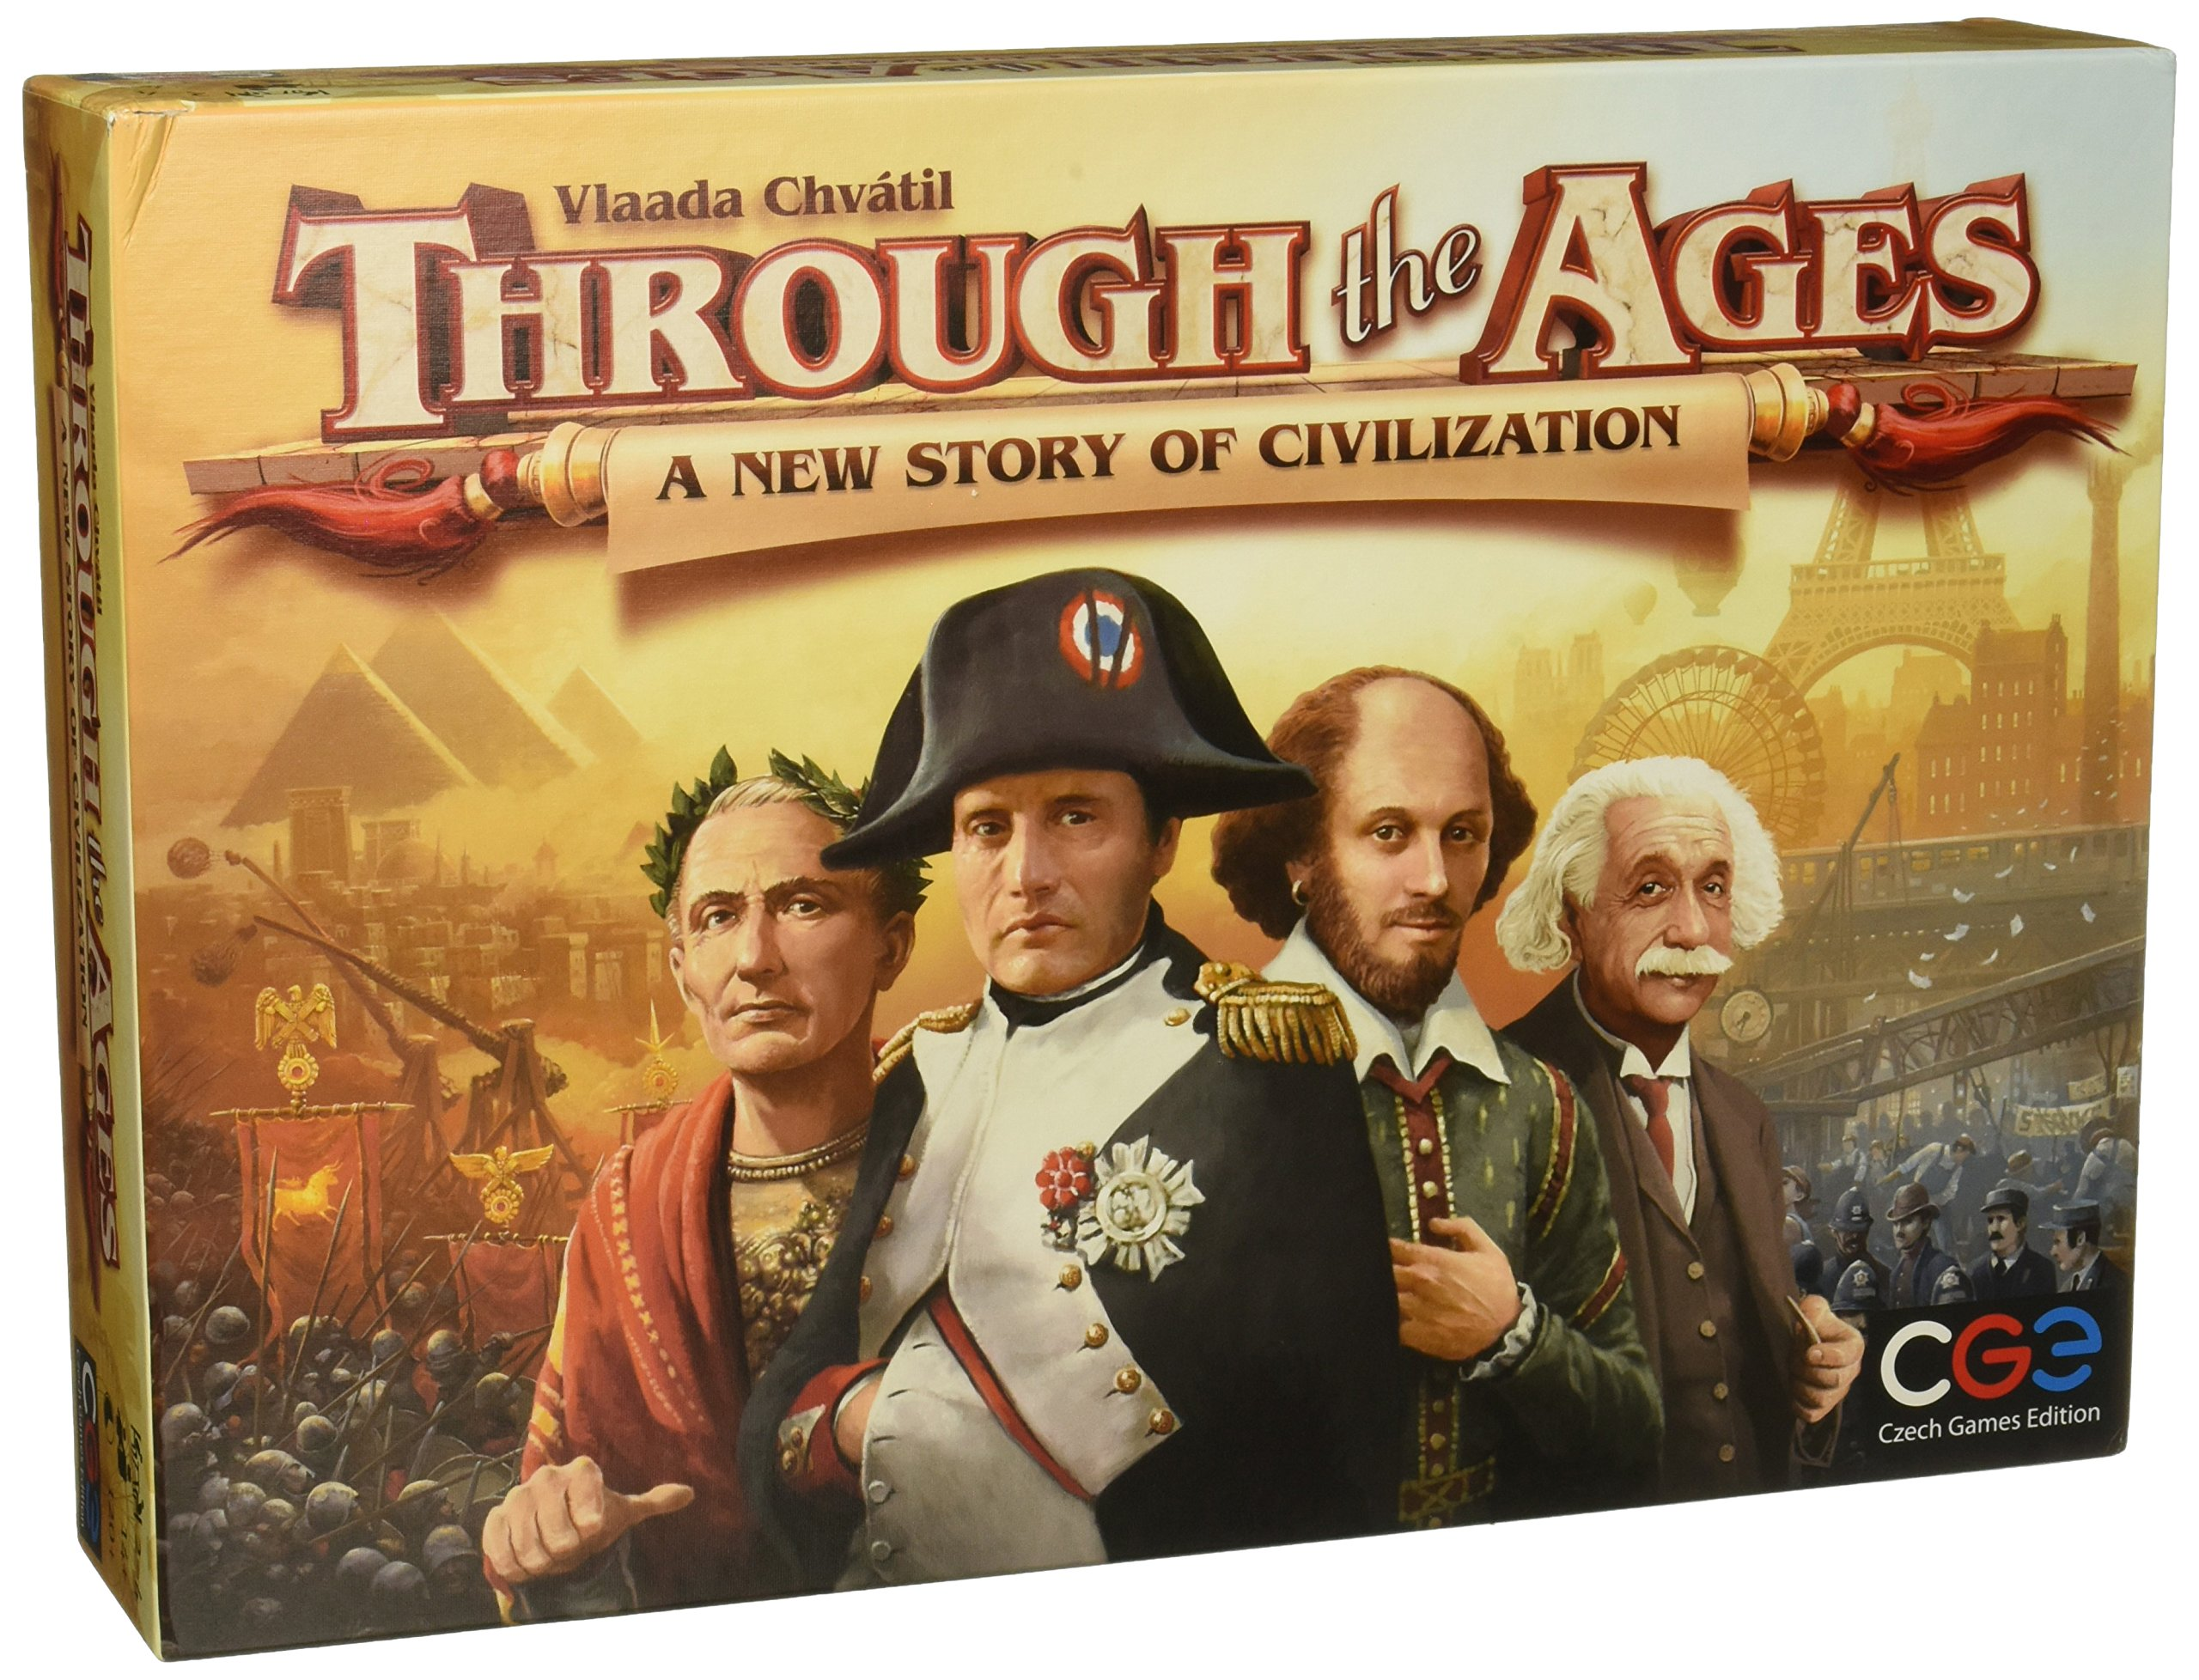 Czech Games Edition CGE00032 Through the Ages [2015] - A New Story of Civilization, Board Game by Vlaada Chvatil